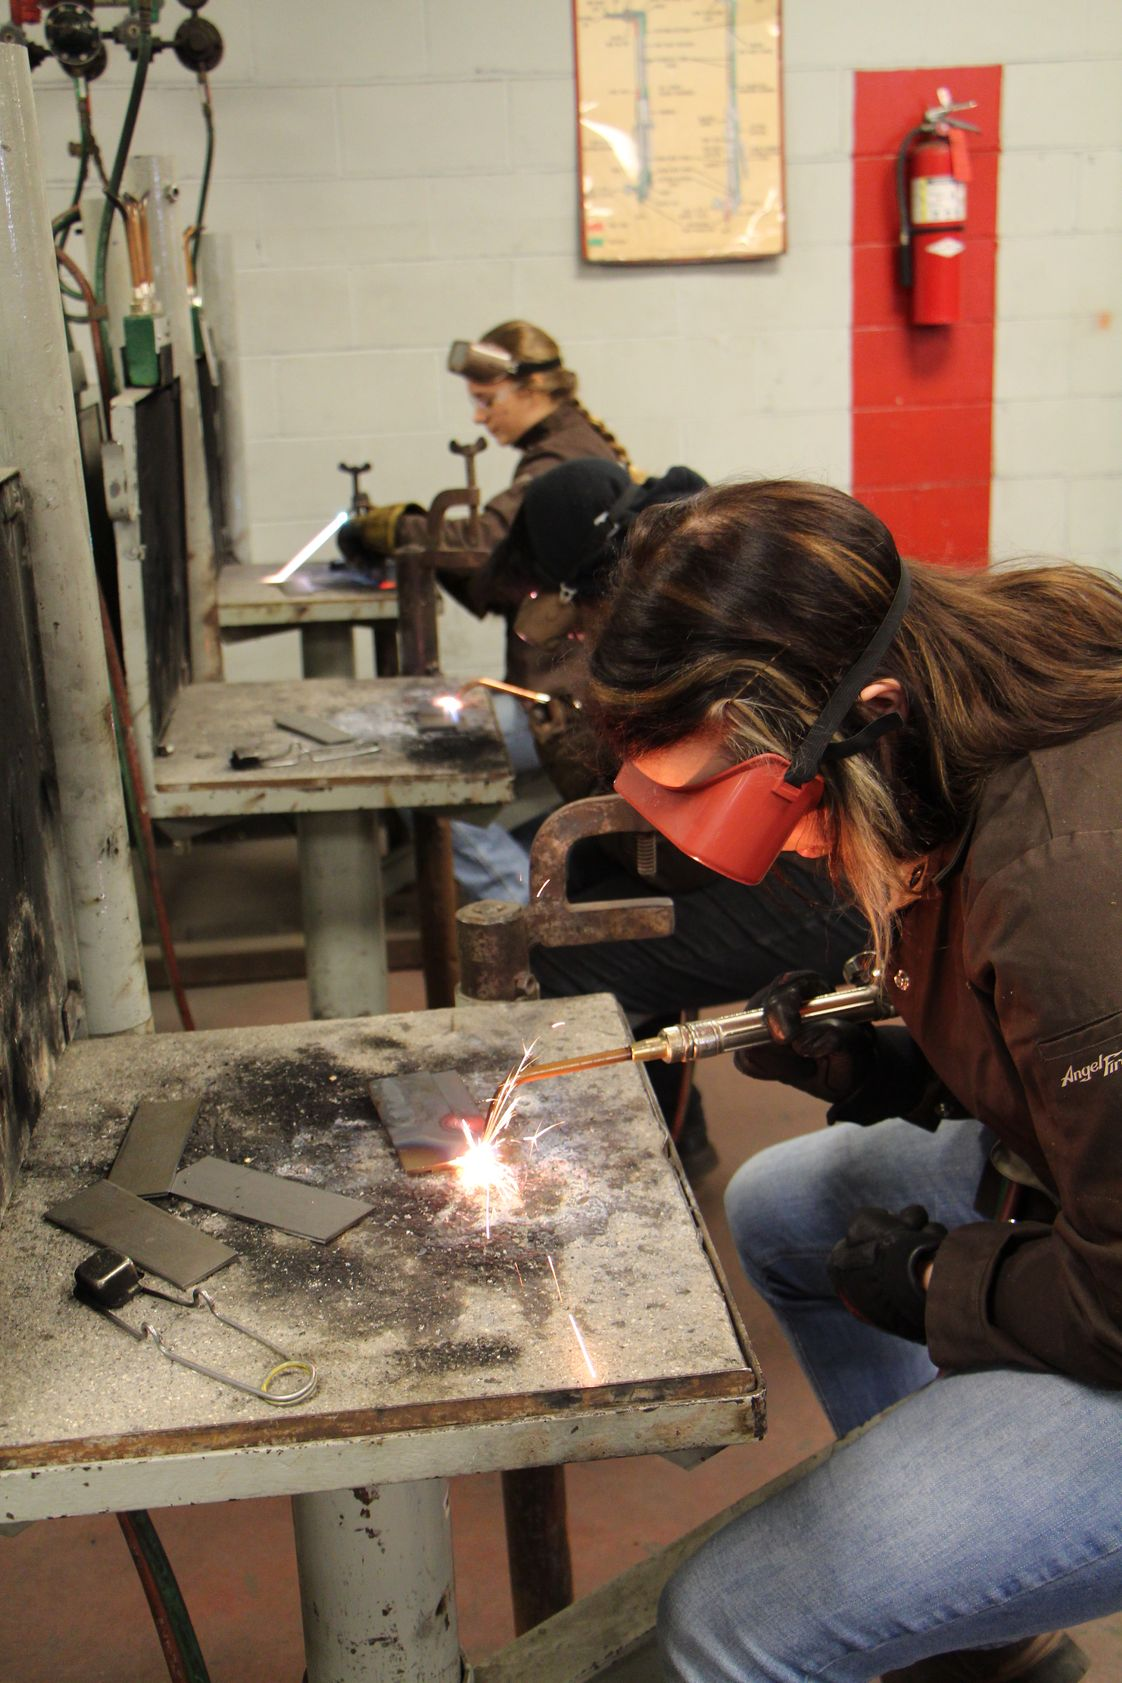 Dunwoody College of Technology Photo #1 - Welding students in a Dunwoody classroom/workshop